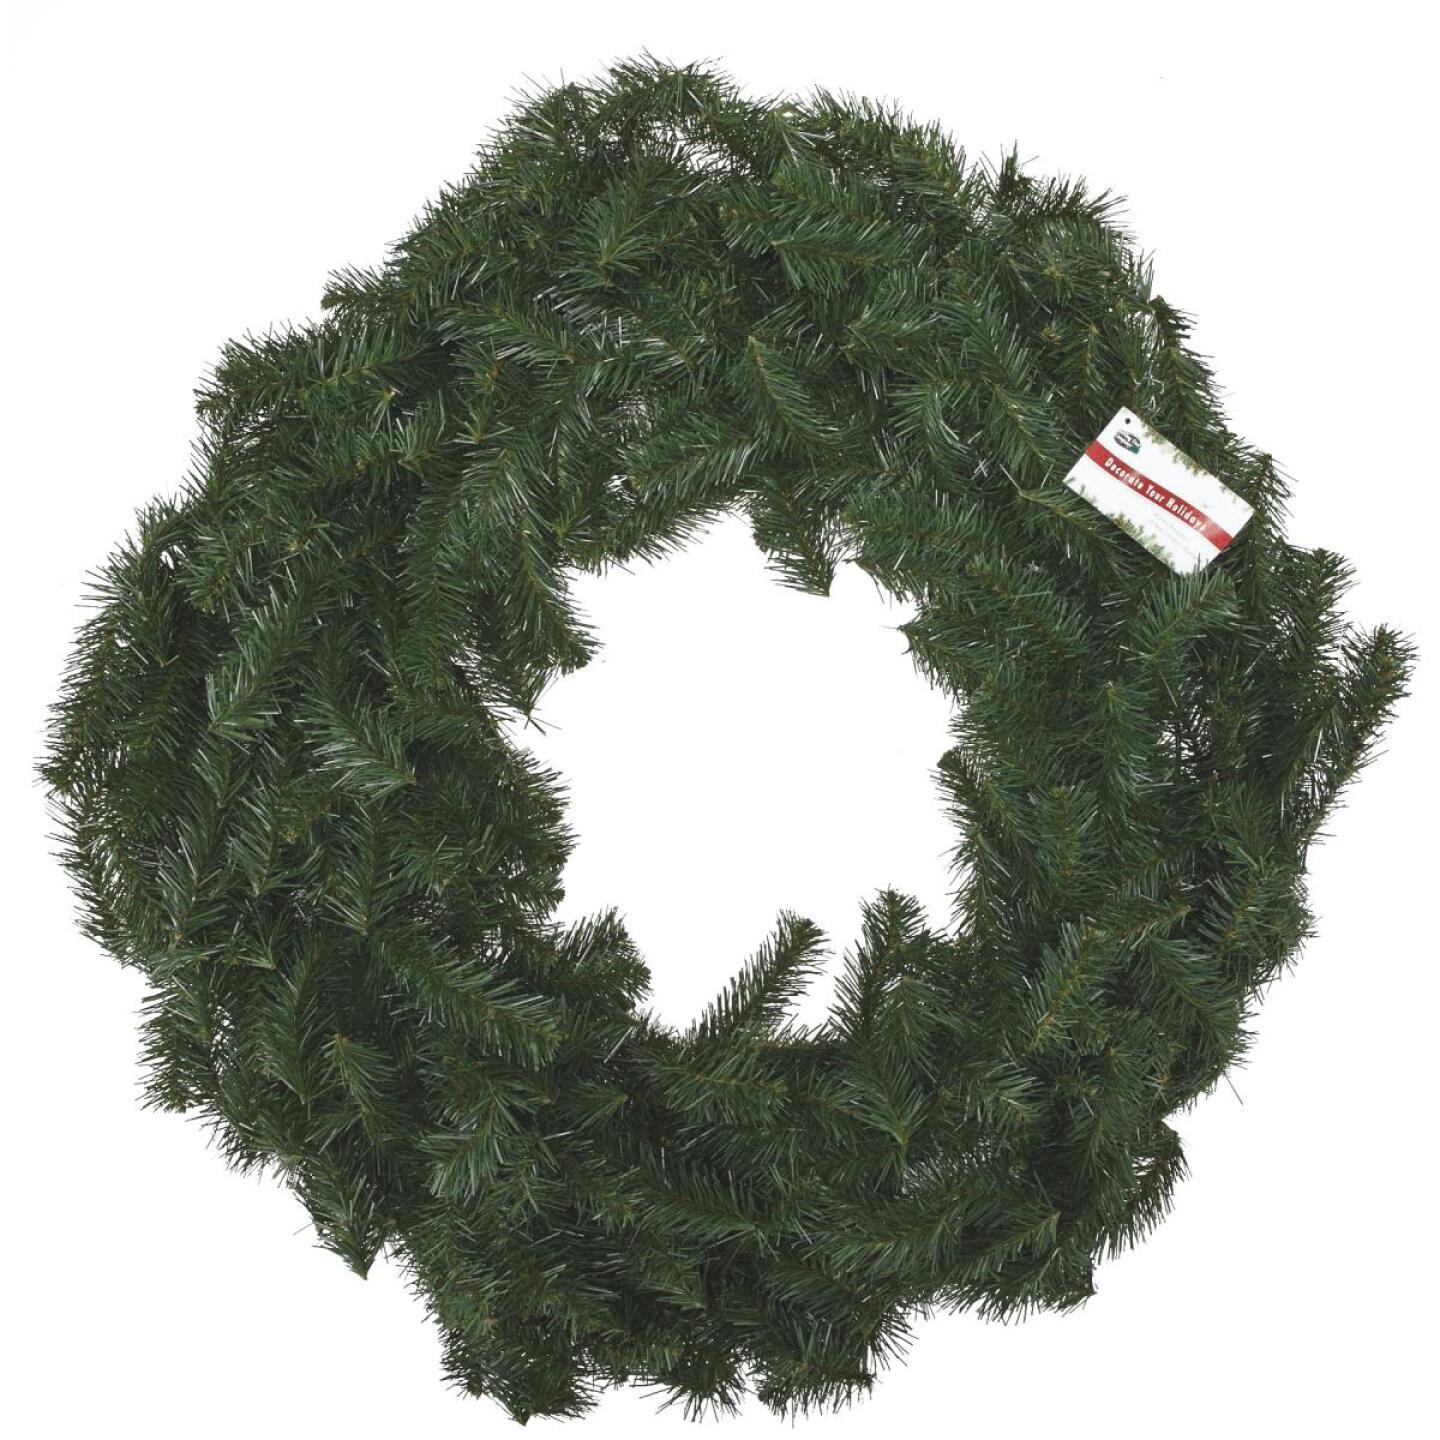 Gerson 36 In. Canadian Pine Artificial Wreath Image 3